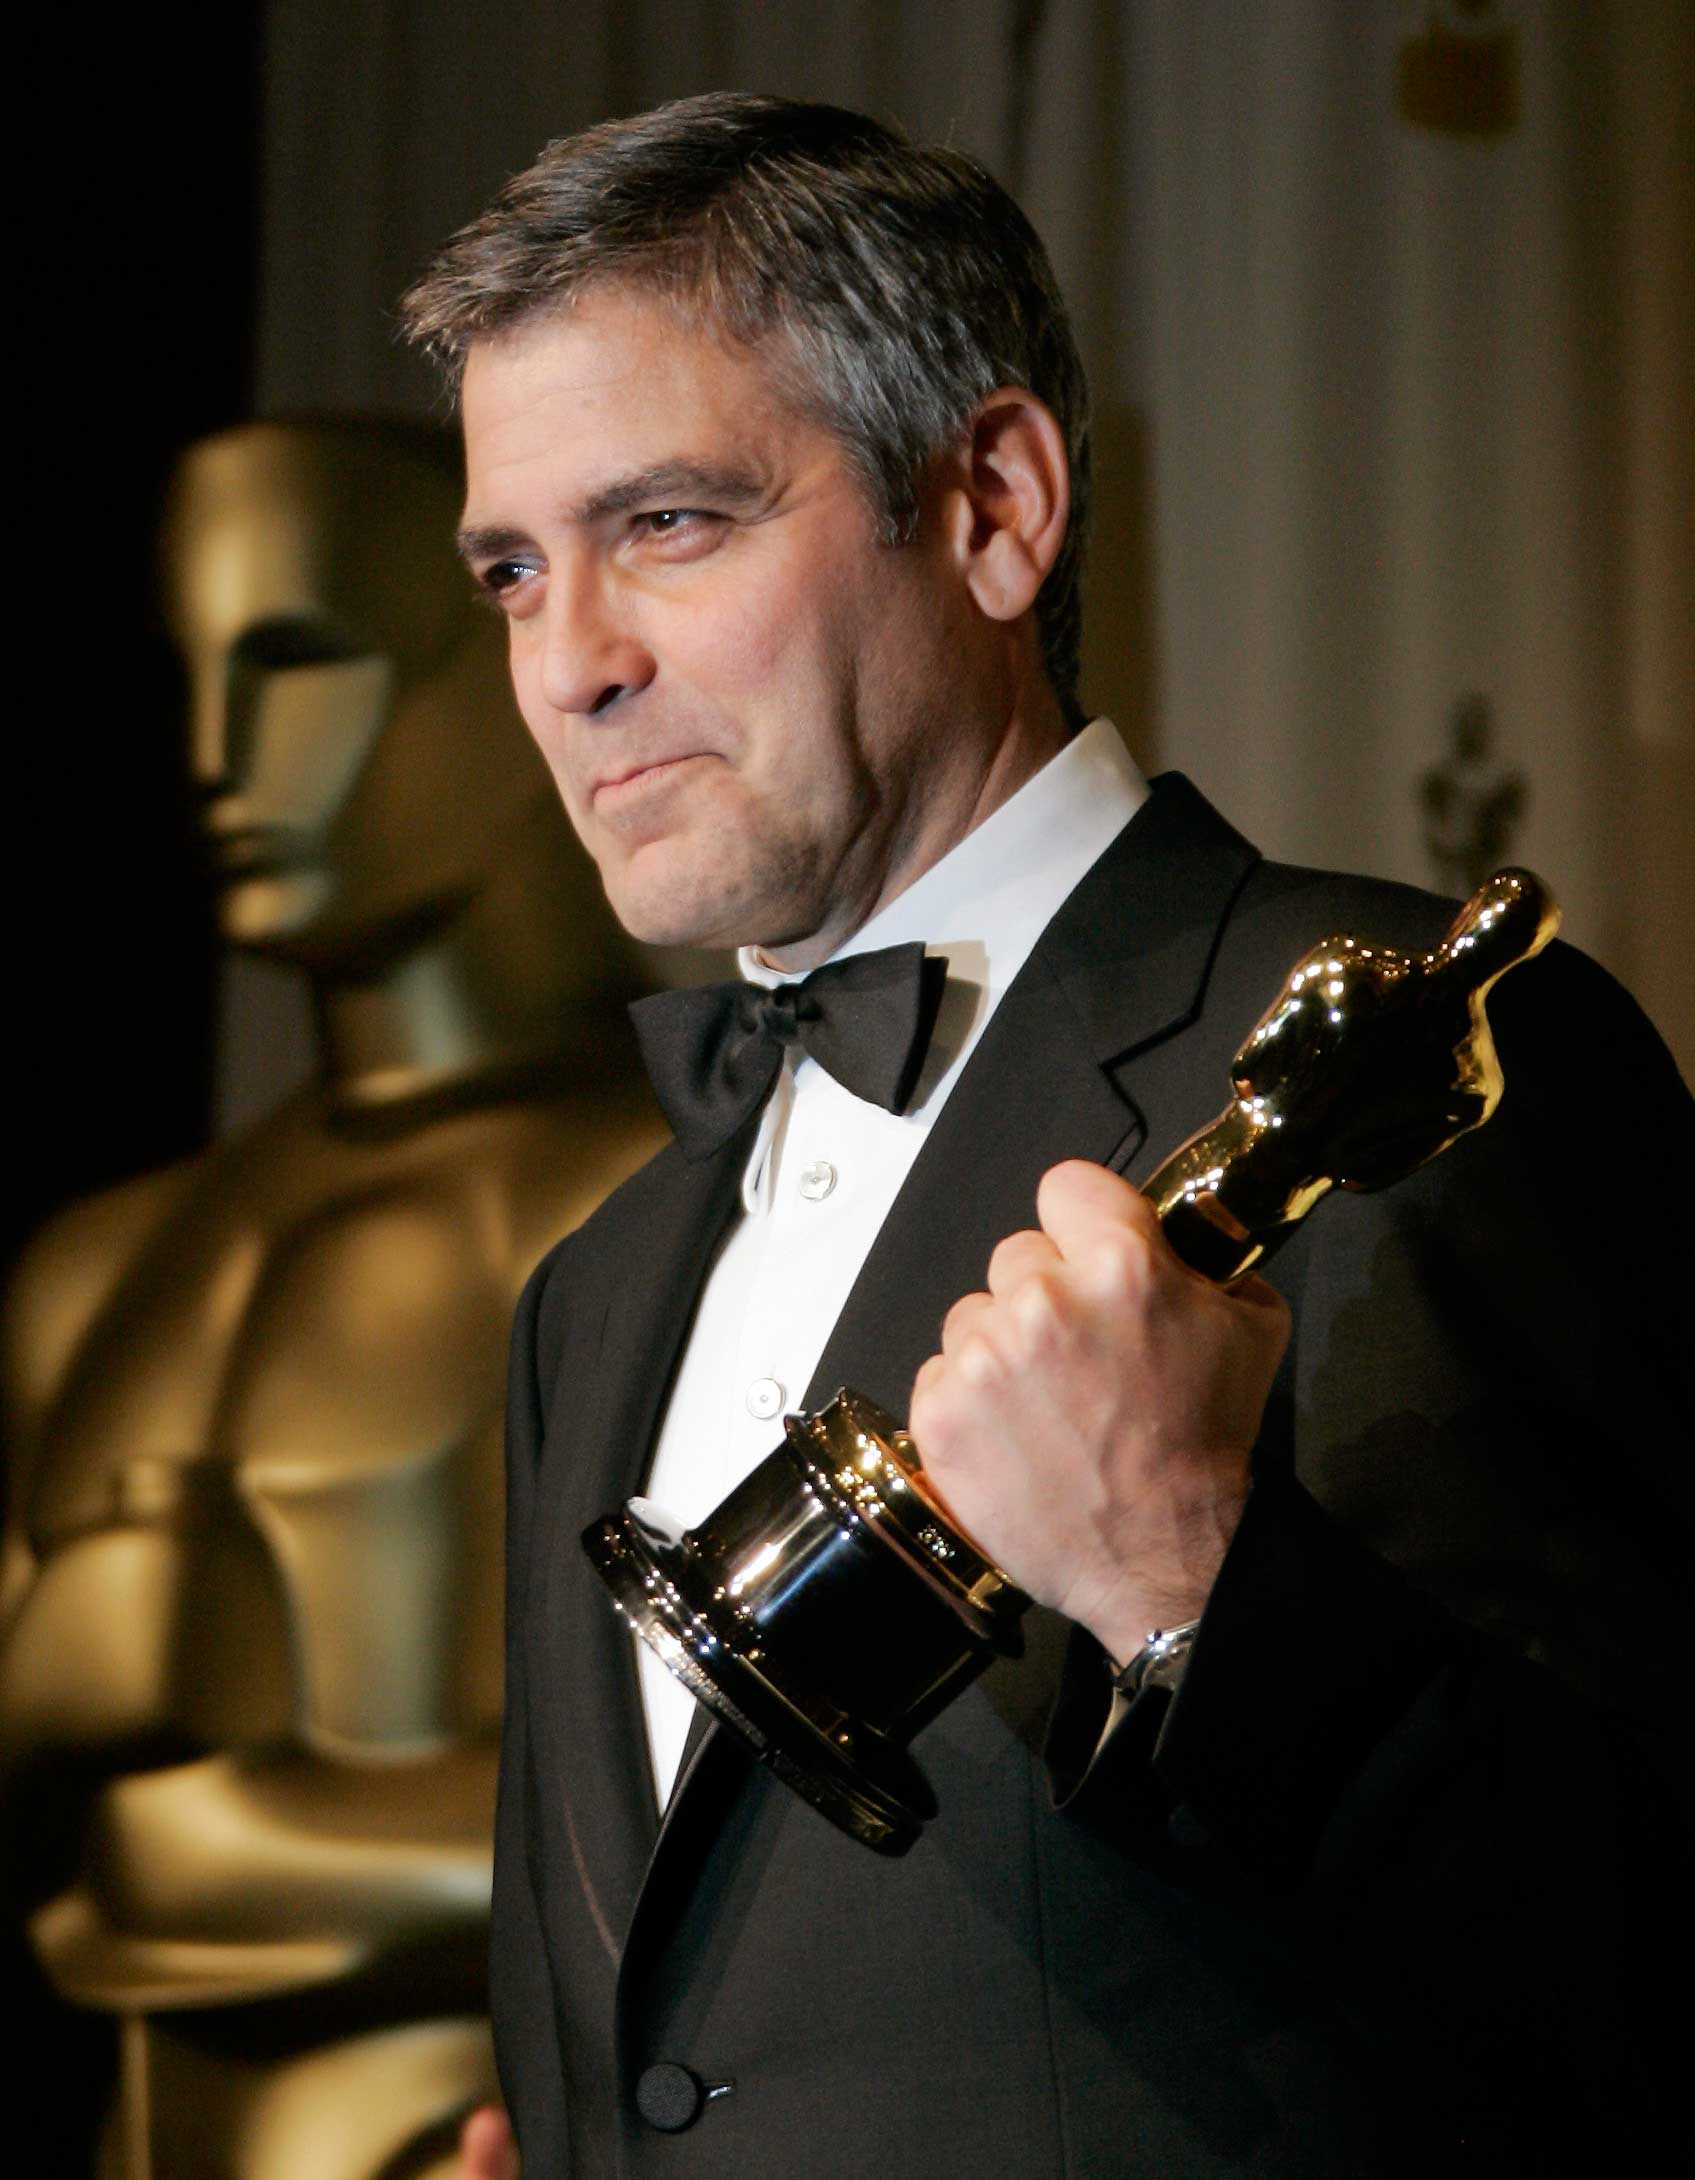 In 2006 Clooney was the first person in Oscars history to be nominated for best director (Good Night and Good Luck) and best actor (Syriana) in different movies in the same year.